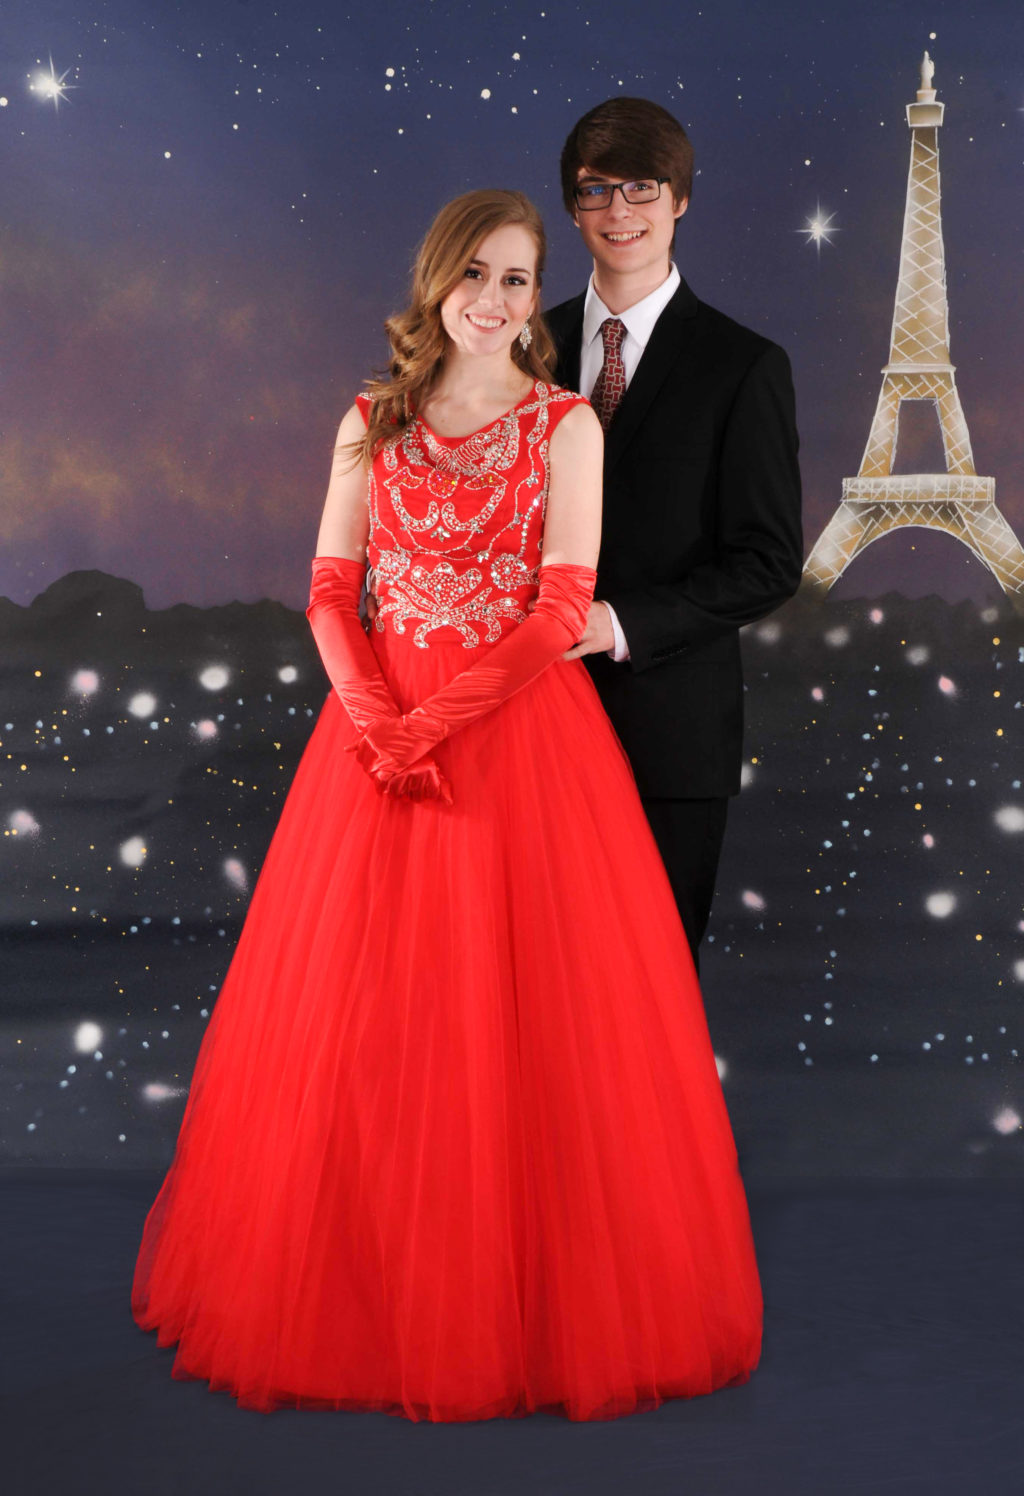 10 Prom Hacks You Need to Know - Virtuous Prom